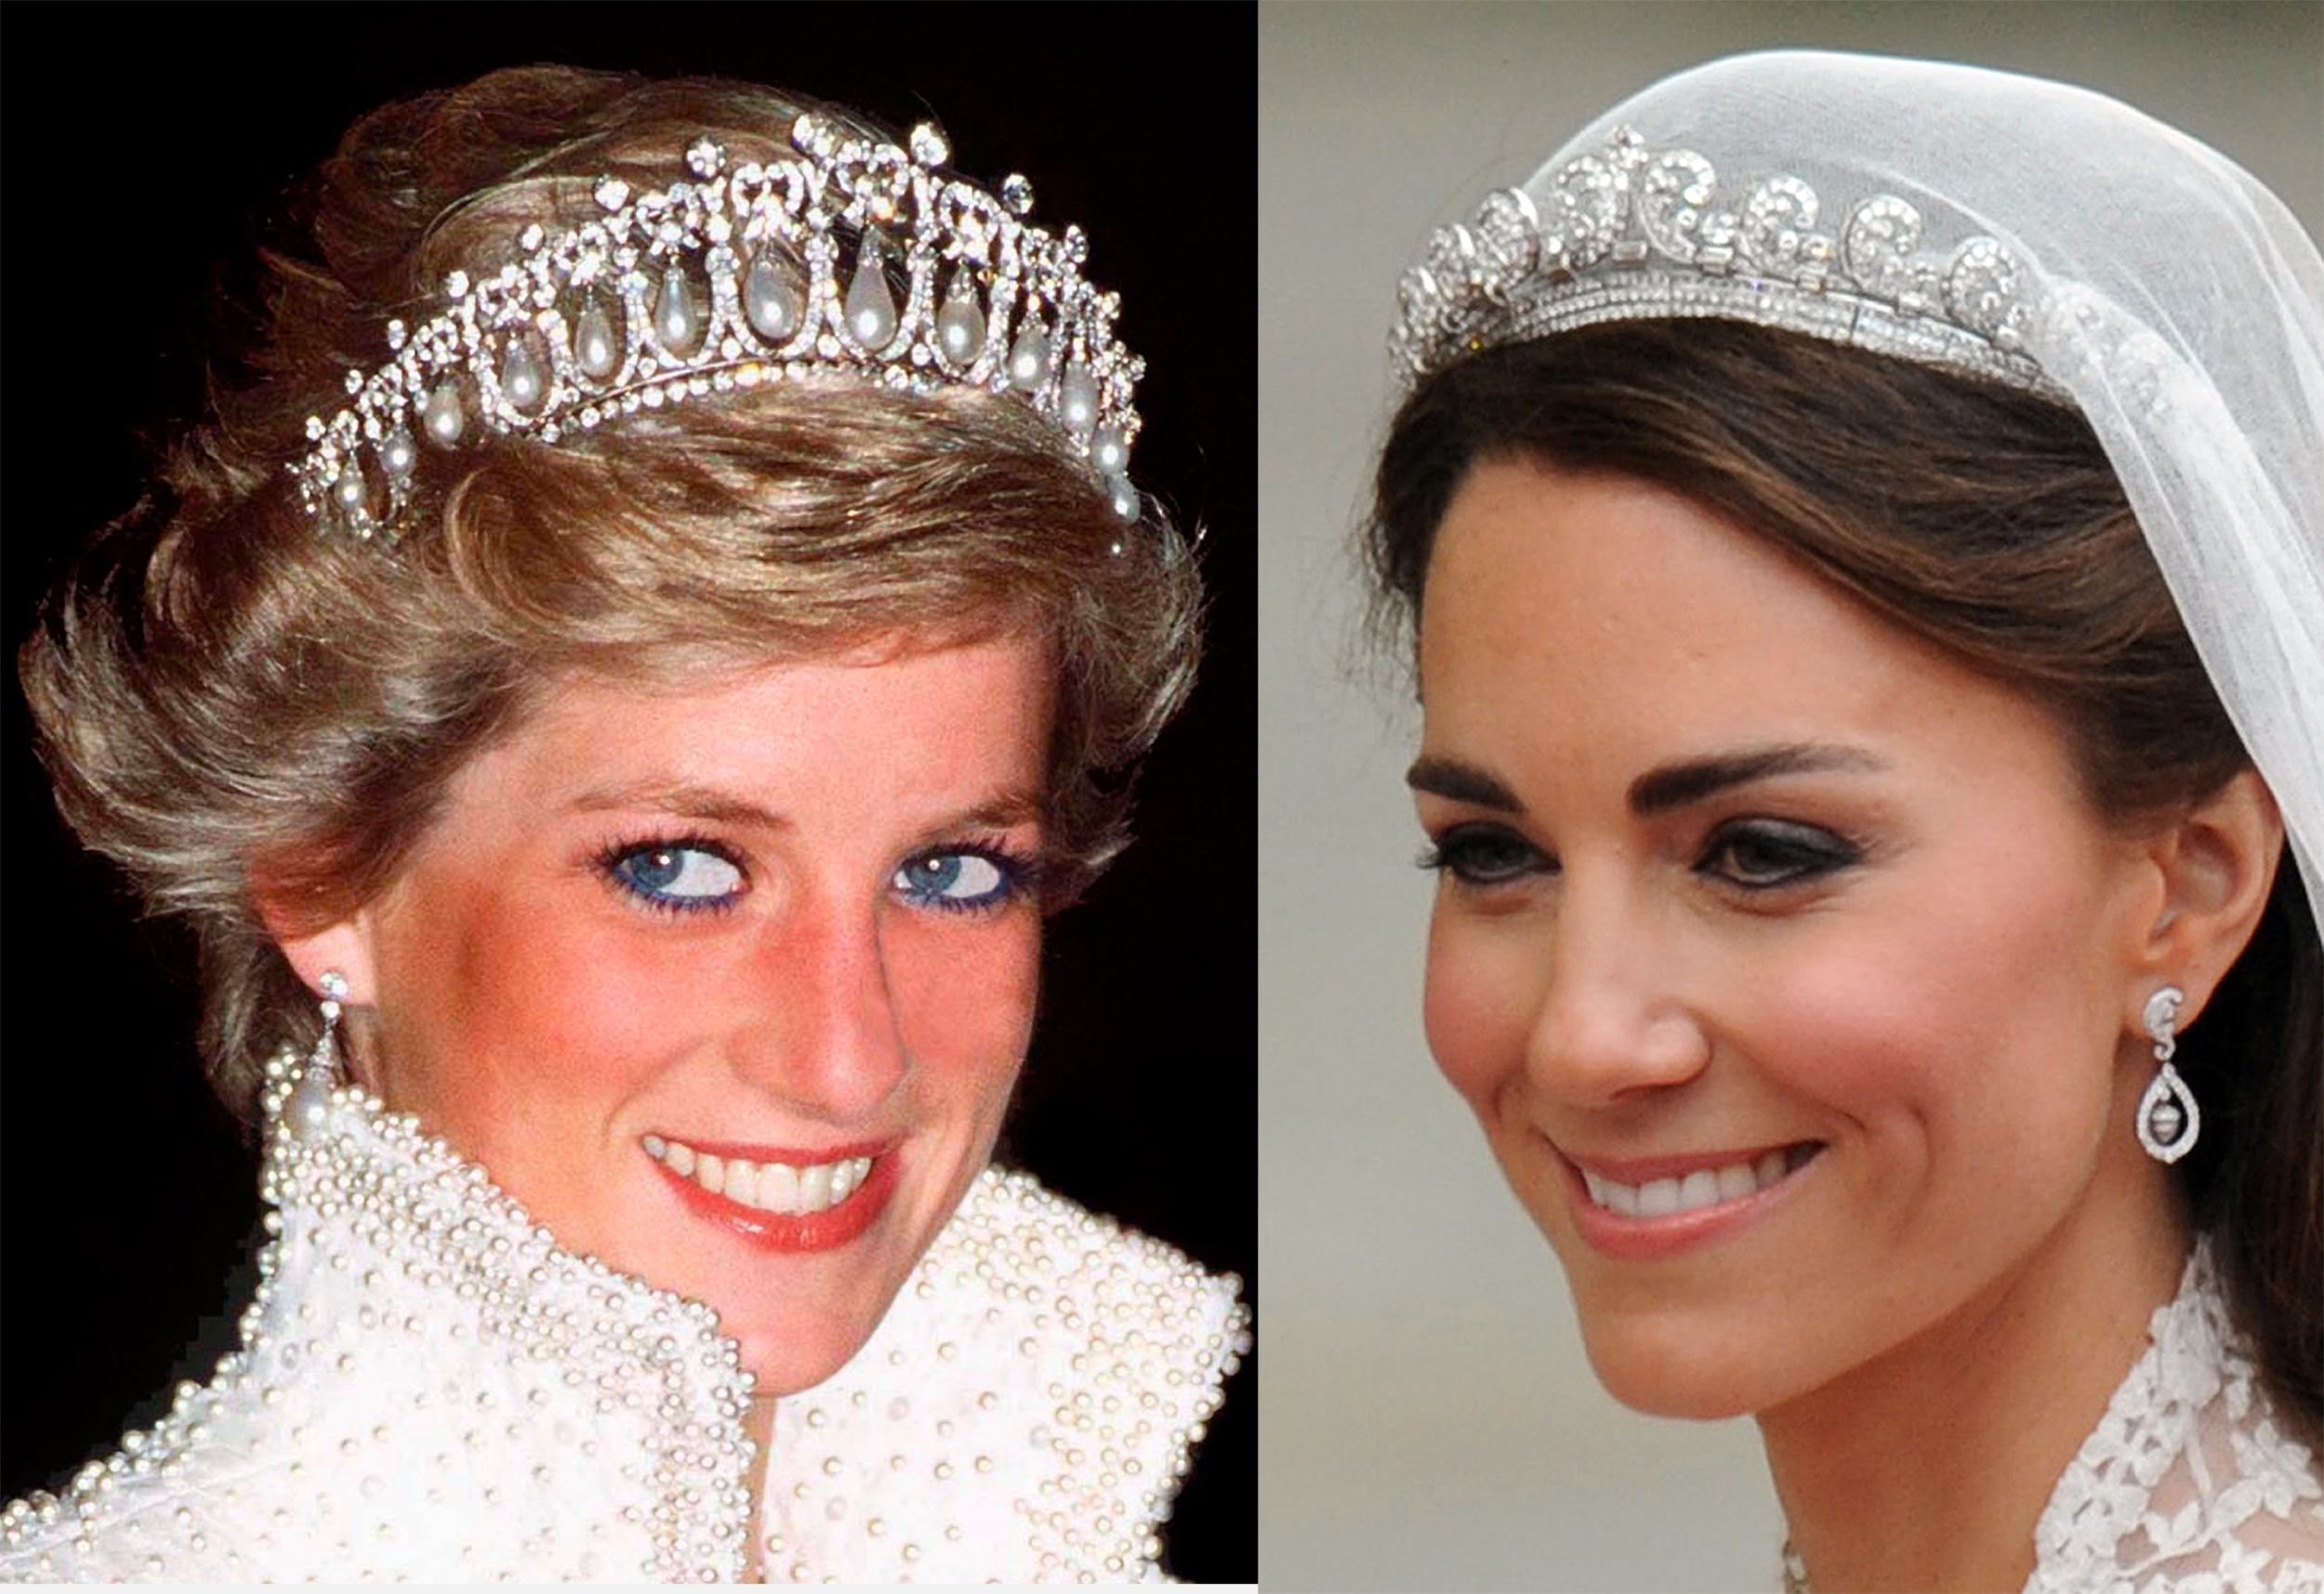 Tiaras And Crowns A Look At The Headpieces Of The British Royalty